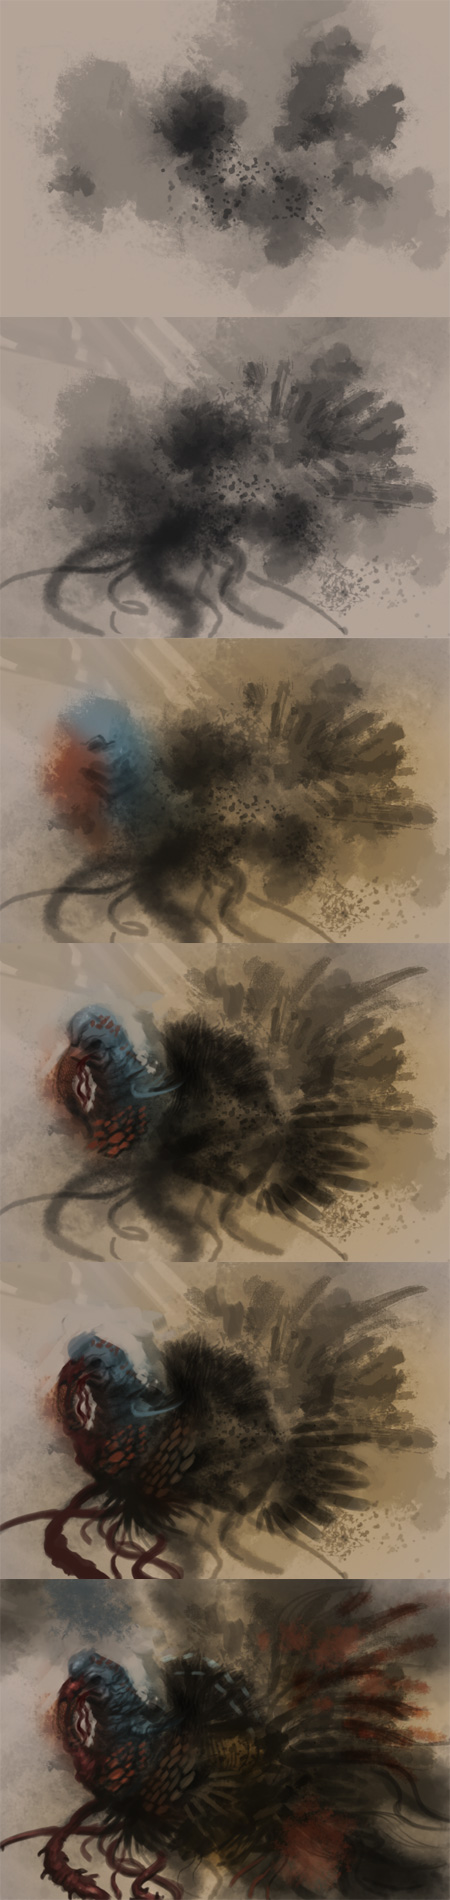 creature speedpainting step by step